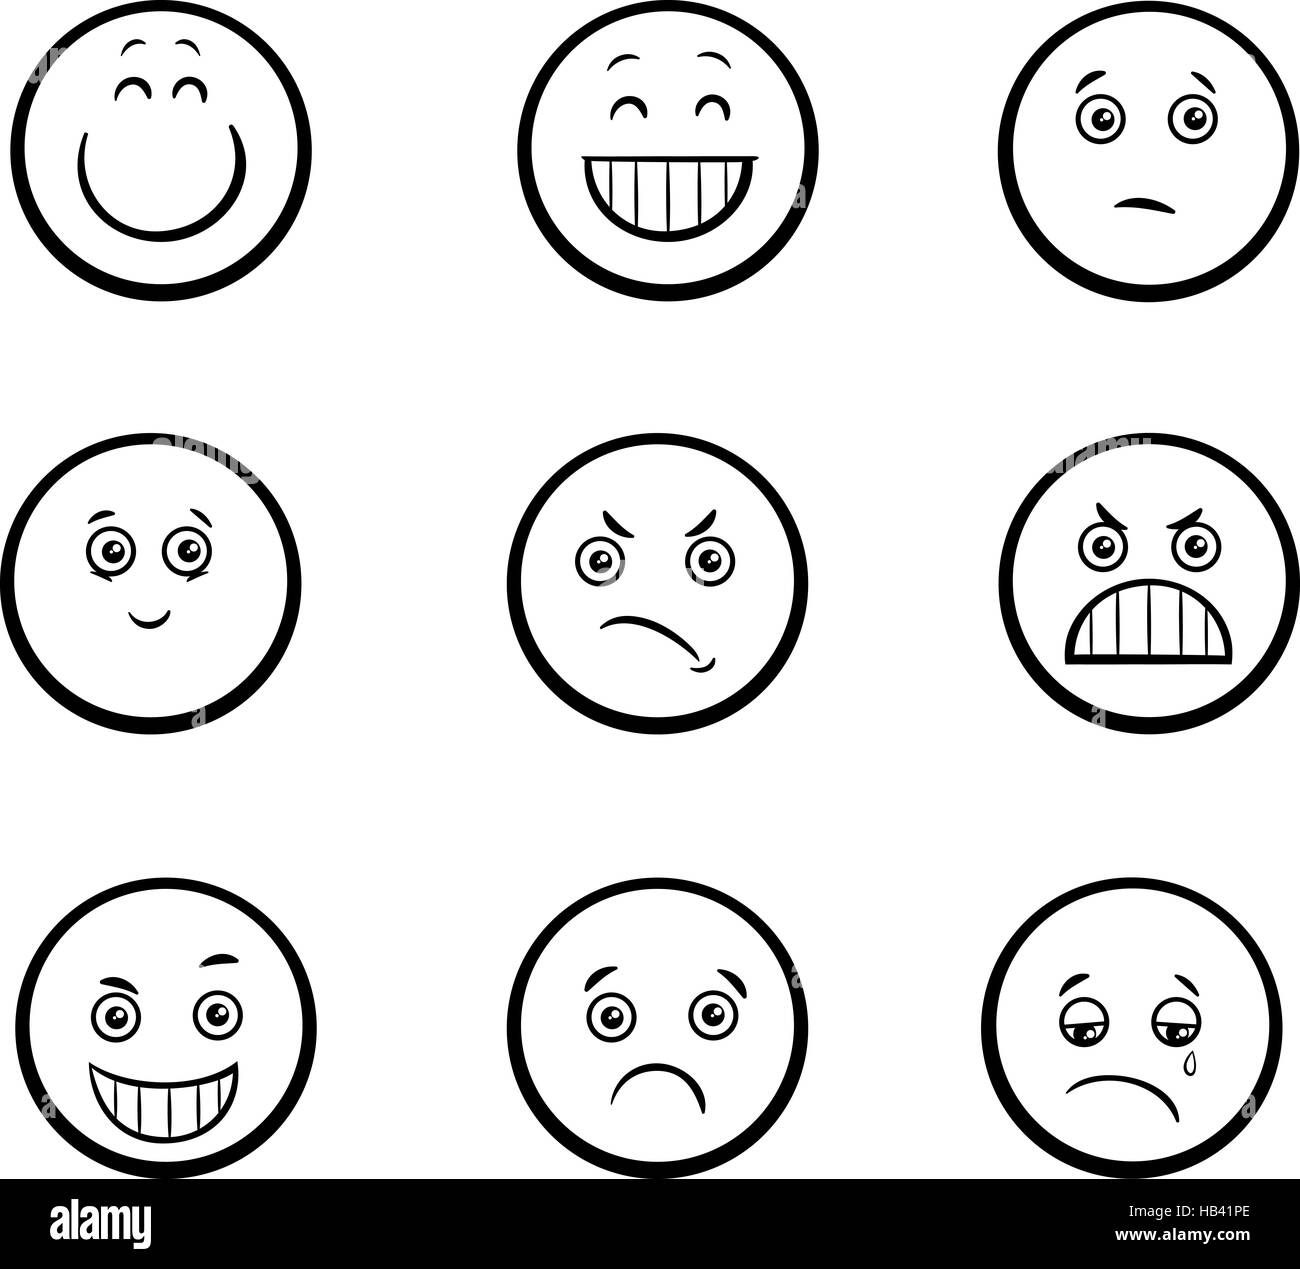 cartoon emoticons set - Stock Image